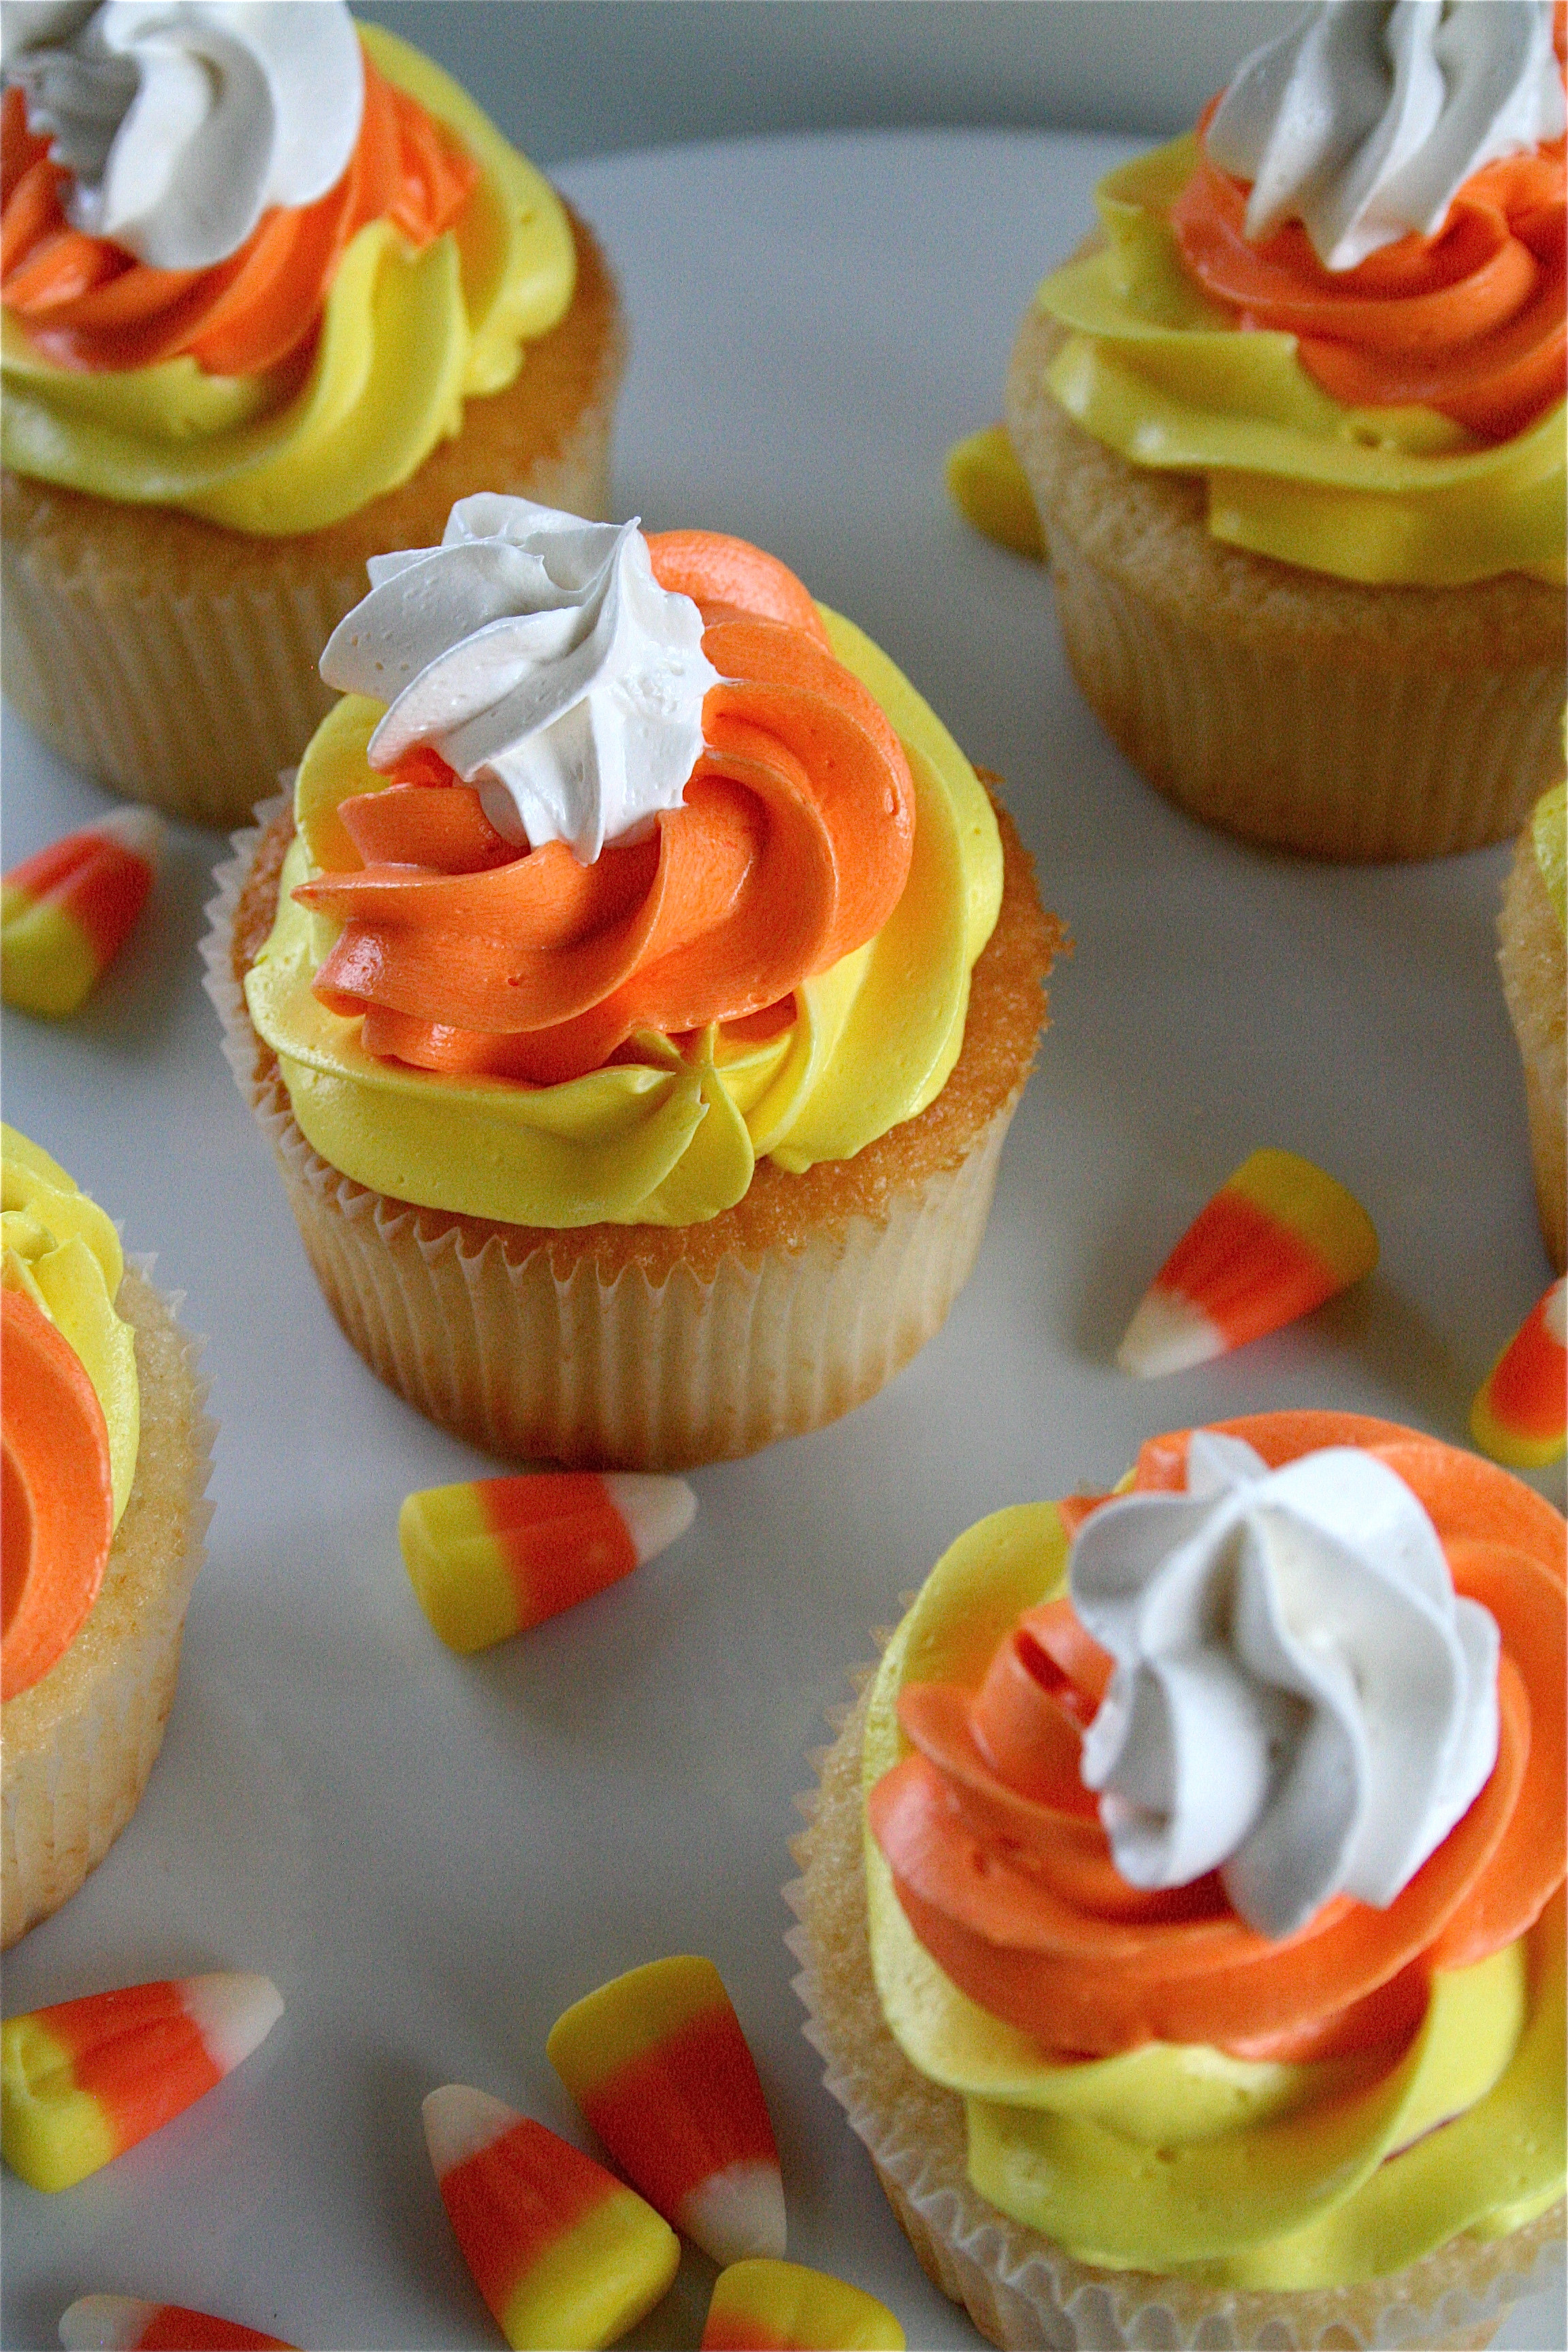 Cute Halloween Cupcakes  28 Cute Halloween Cupcakes Easy Recipes for Halloween